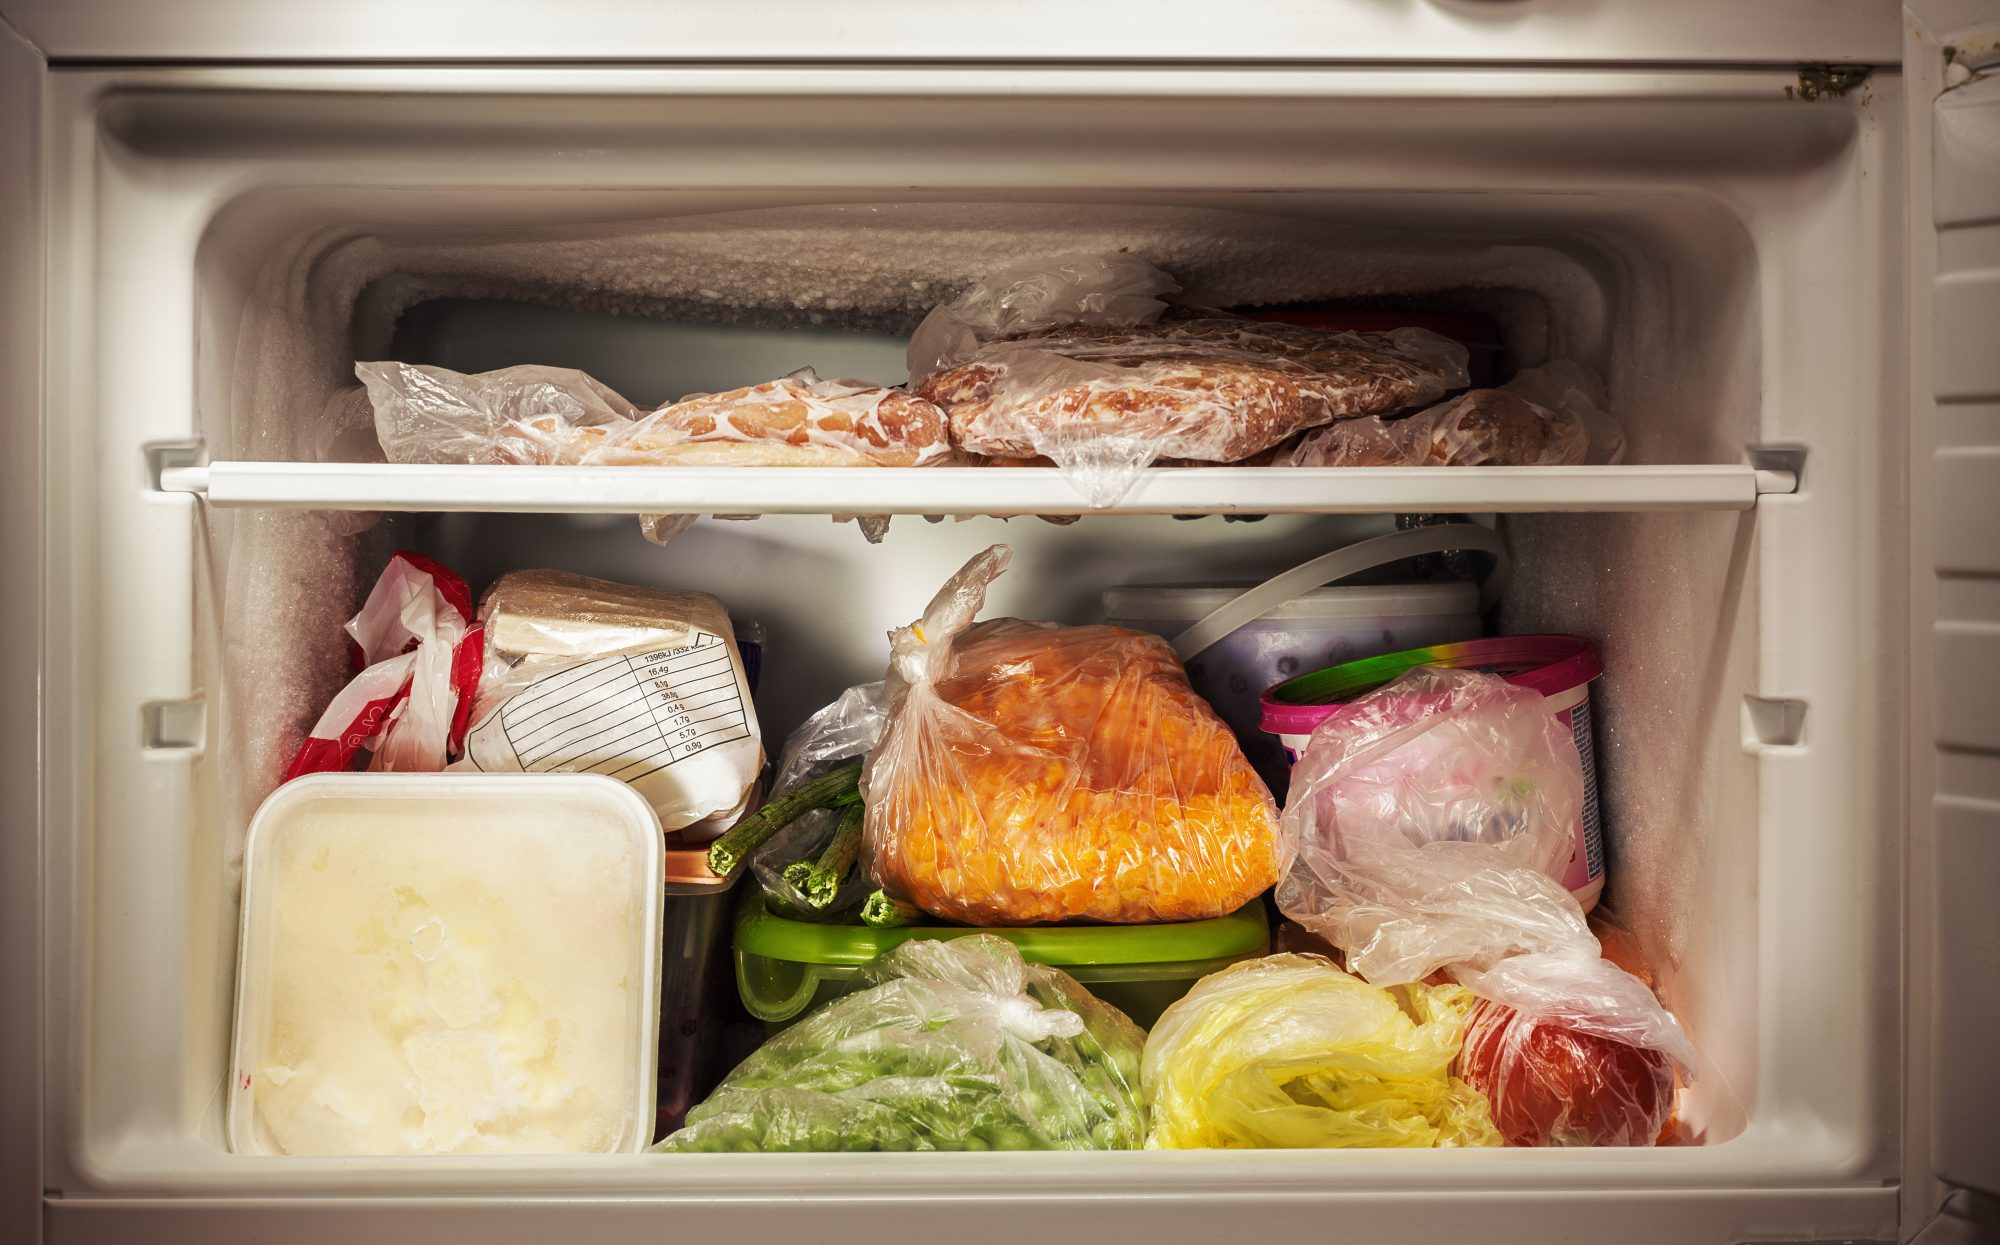 Your Freezer Is a Food Purgatory And Probably Needs Cleaning